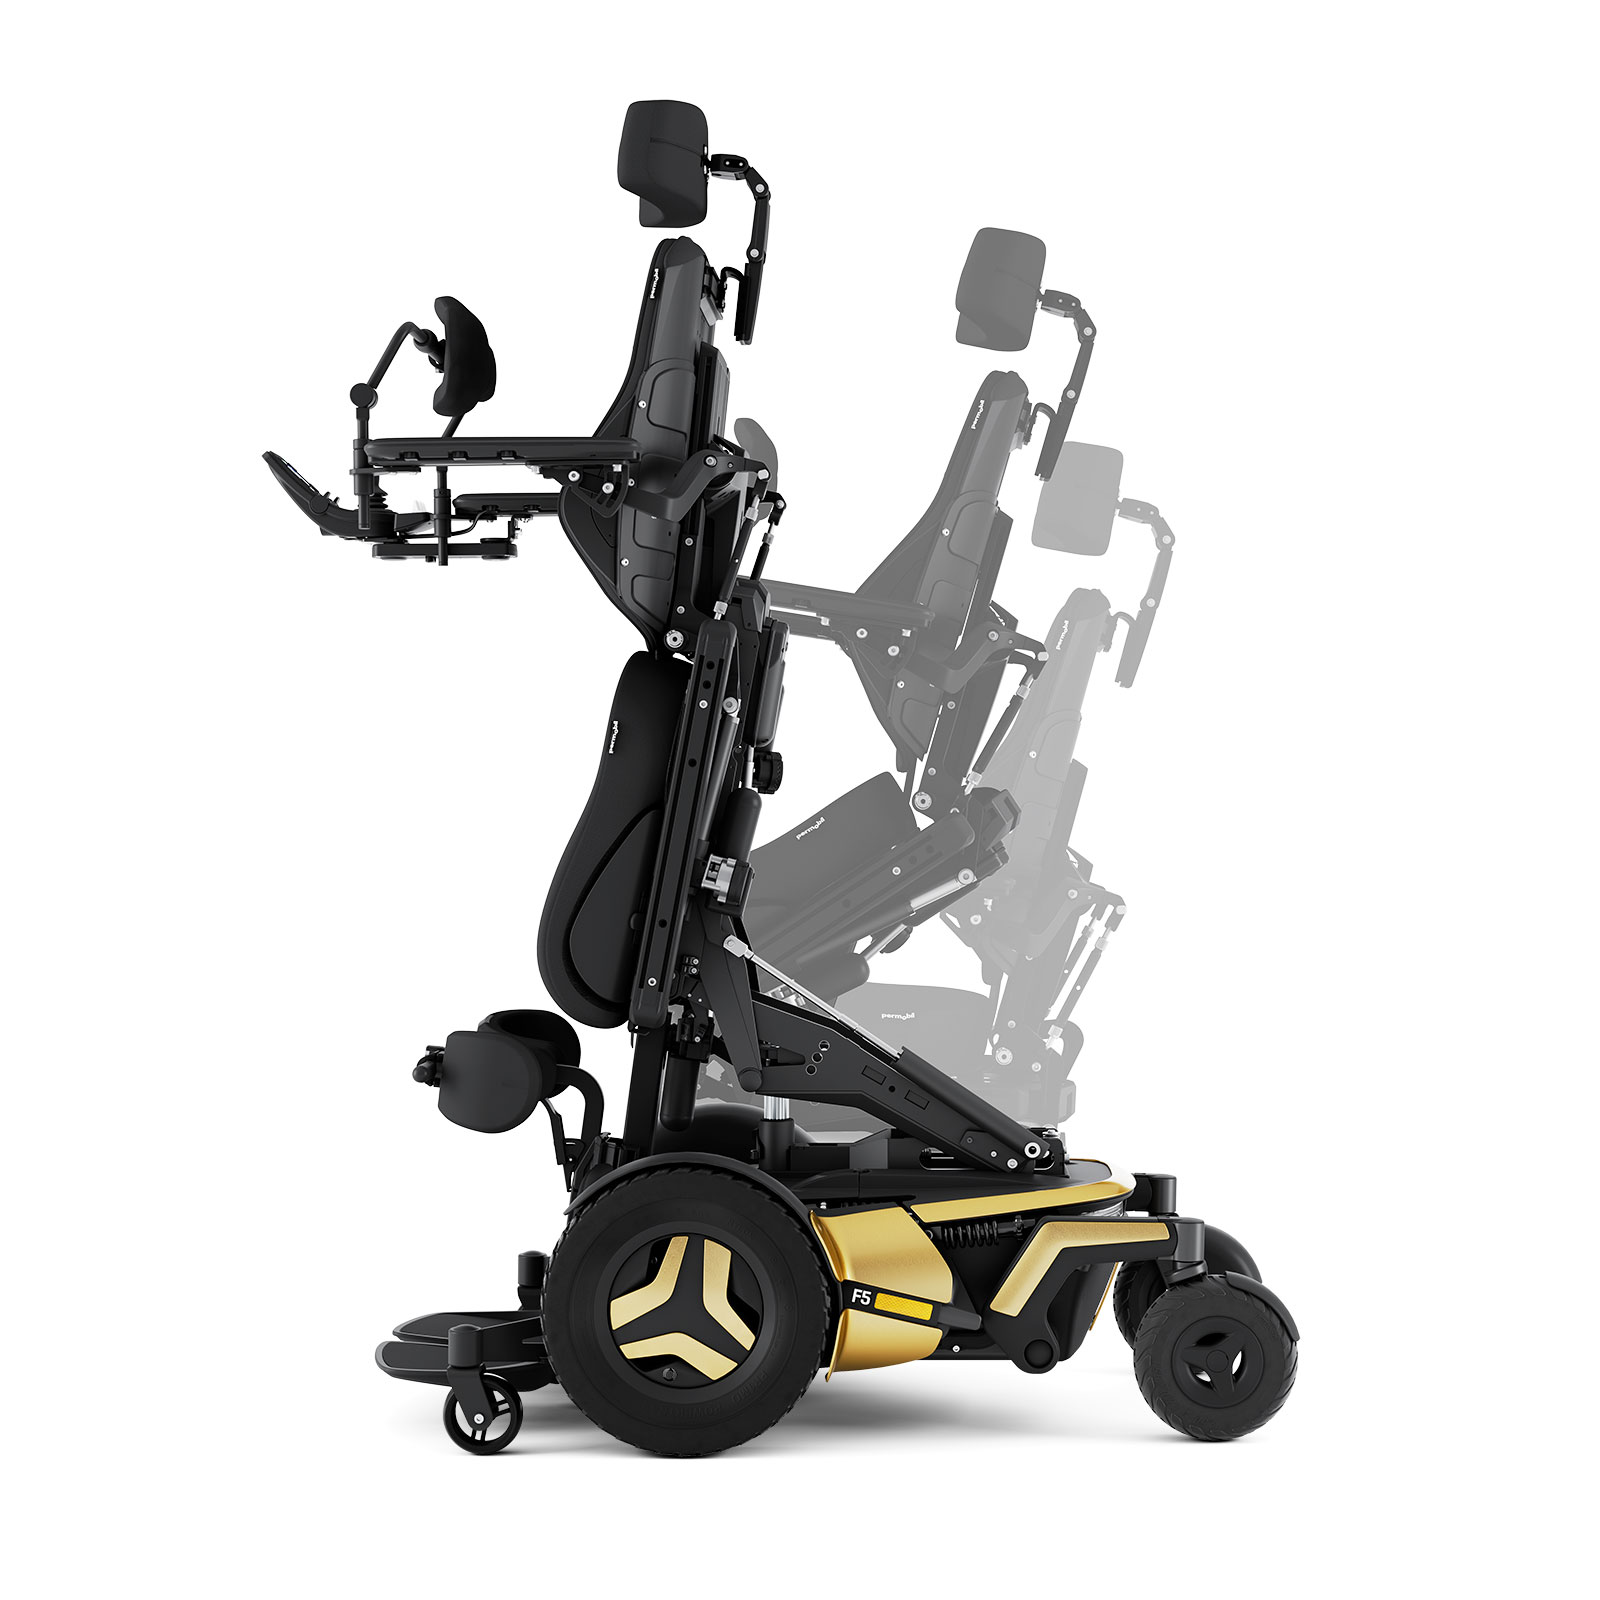 F5 VS Corpus standing powerchair in gold showing the stand function